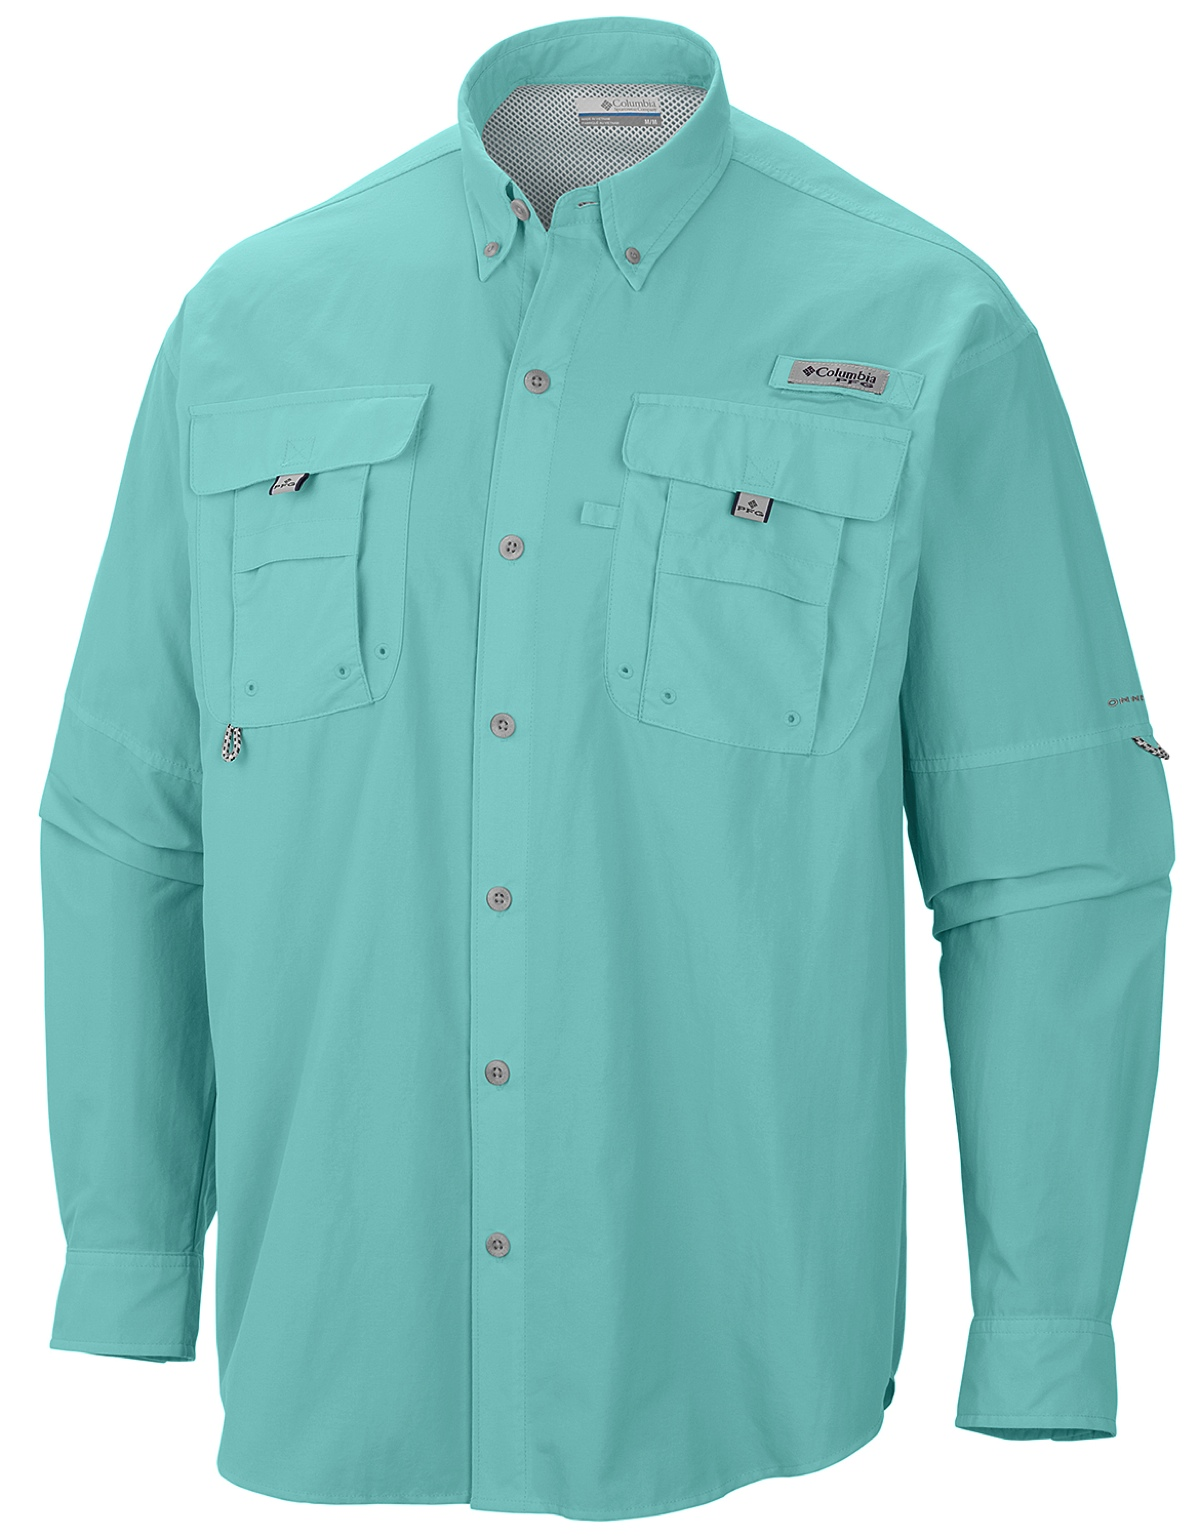 7048 COLUMBIA Bahama II Long Sleeve - Tall Sizes